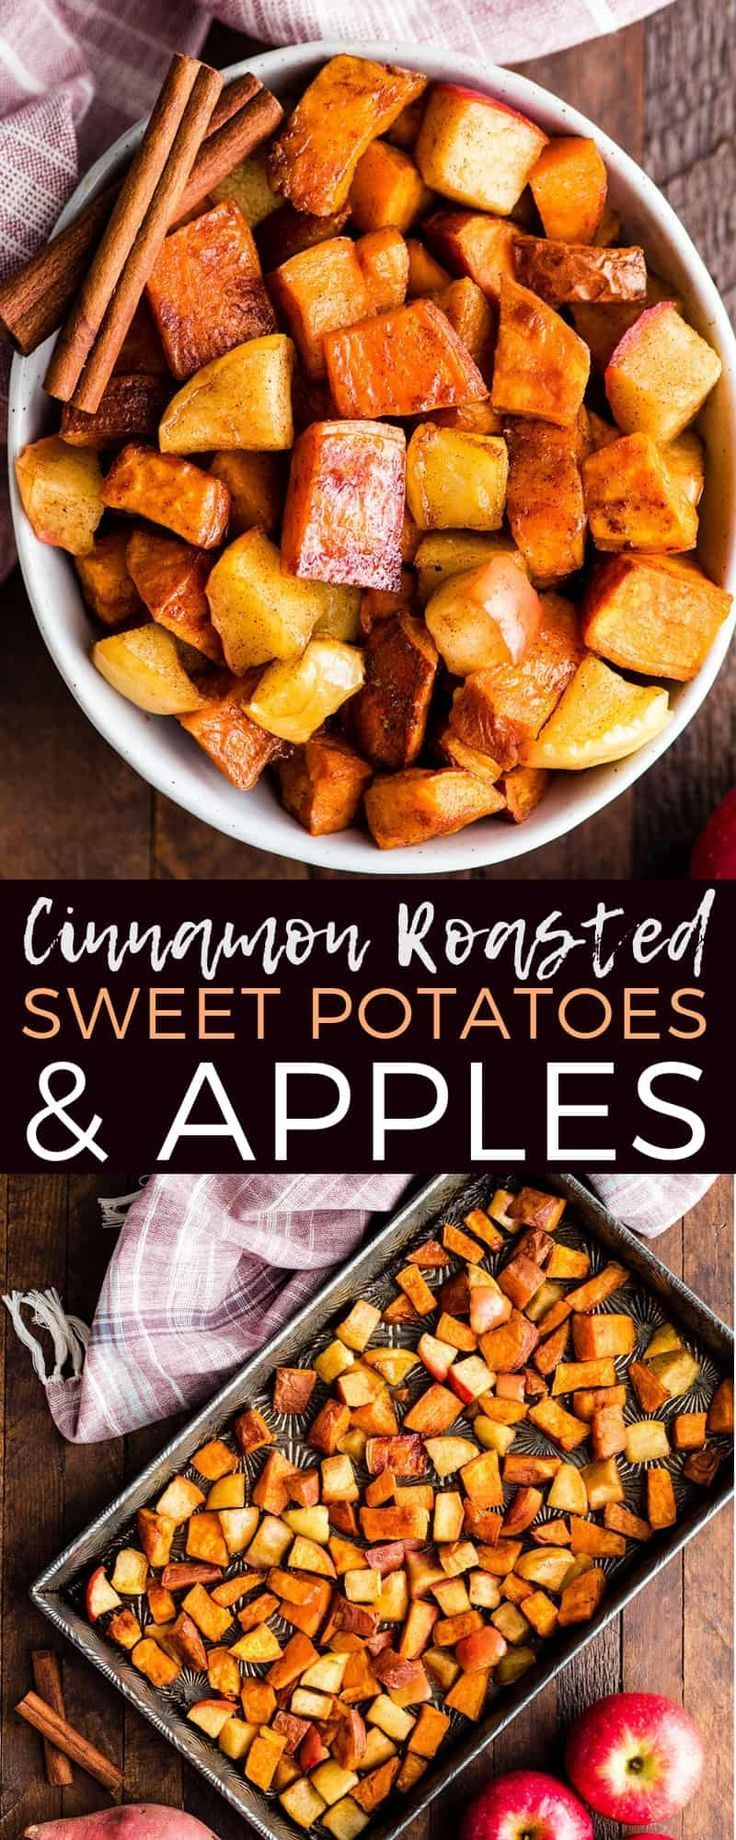 This Cinnamon Roasted Sweet Potatoes and Apples Recipe is a healthy and easy side dish that is perfect for Thanksgiving! These crispy roasted sweet potato cubes and tangy apples are made with only 6 ingredients and are paleo, vegan, gluten-free & dairy-free! #roastedsweetpotatoes #apples #cinnamonapples #cinnamonsweetpotatoes #paleo #vegan #glutenfree #thanksgiving via @joyfoodsunshine images